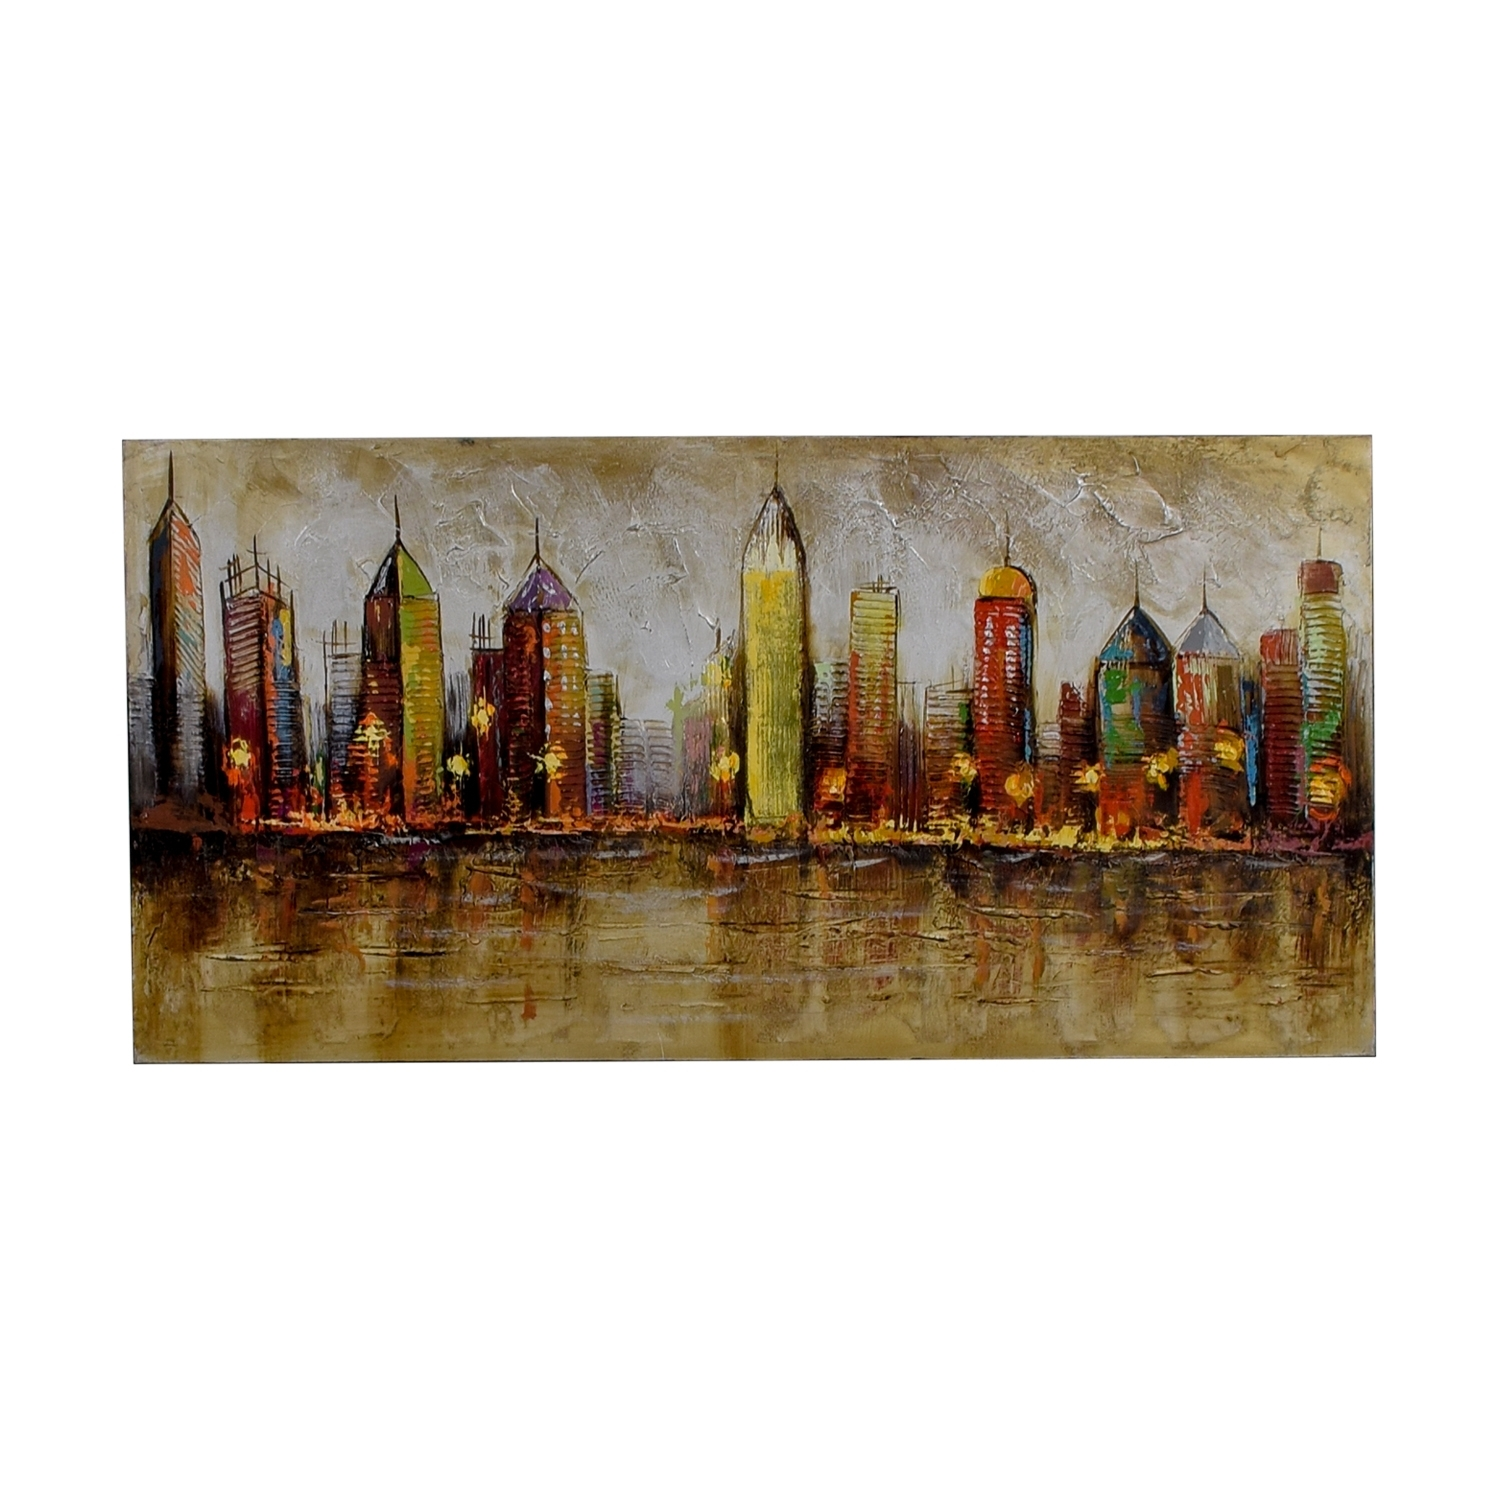 80% Off – Pier 1 Imports Pier 1 Imports Cityscape Painting / Decor Regarding Pier 1 Wall Art (Gallery 15 of 20)